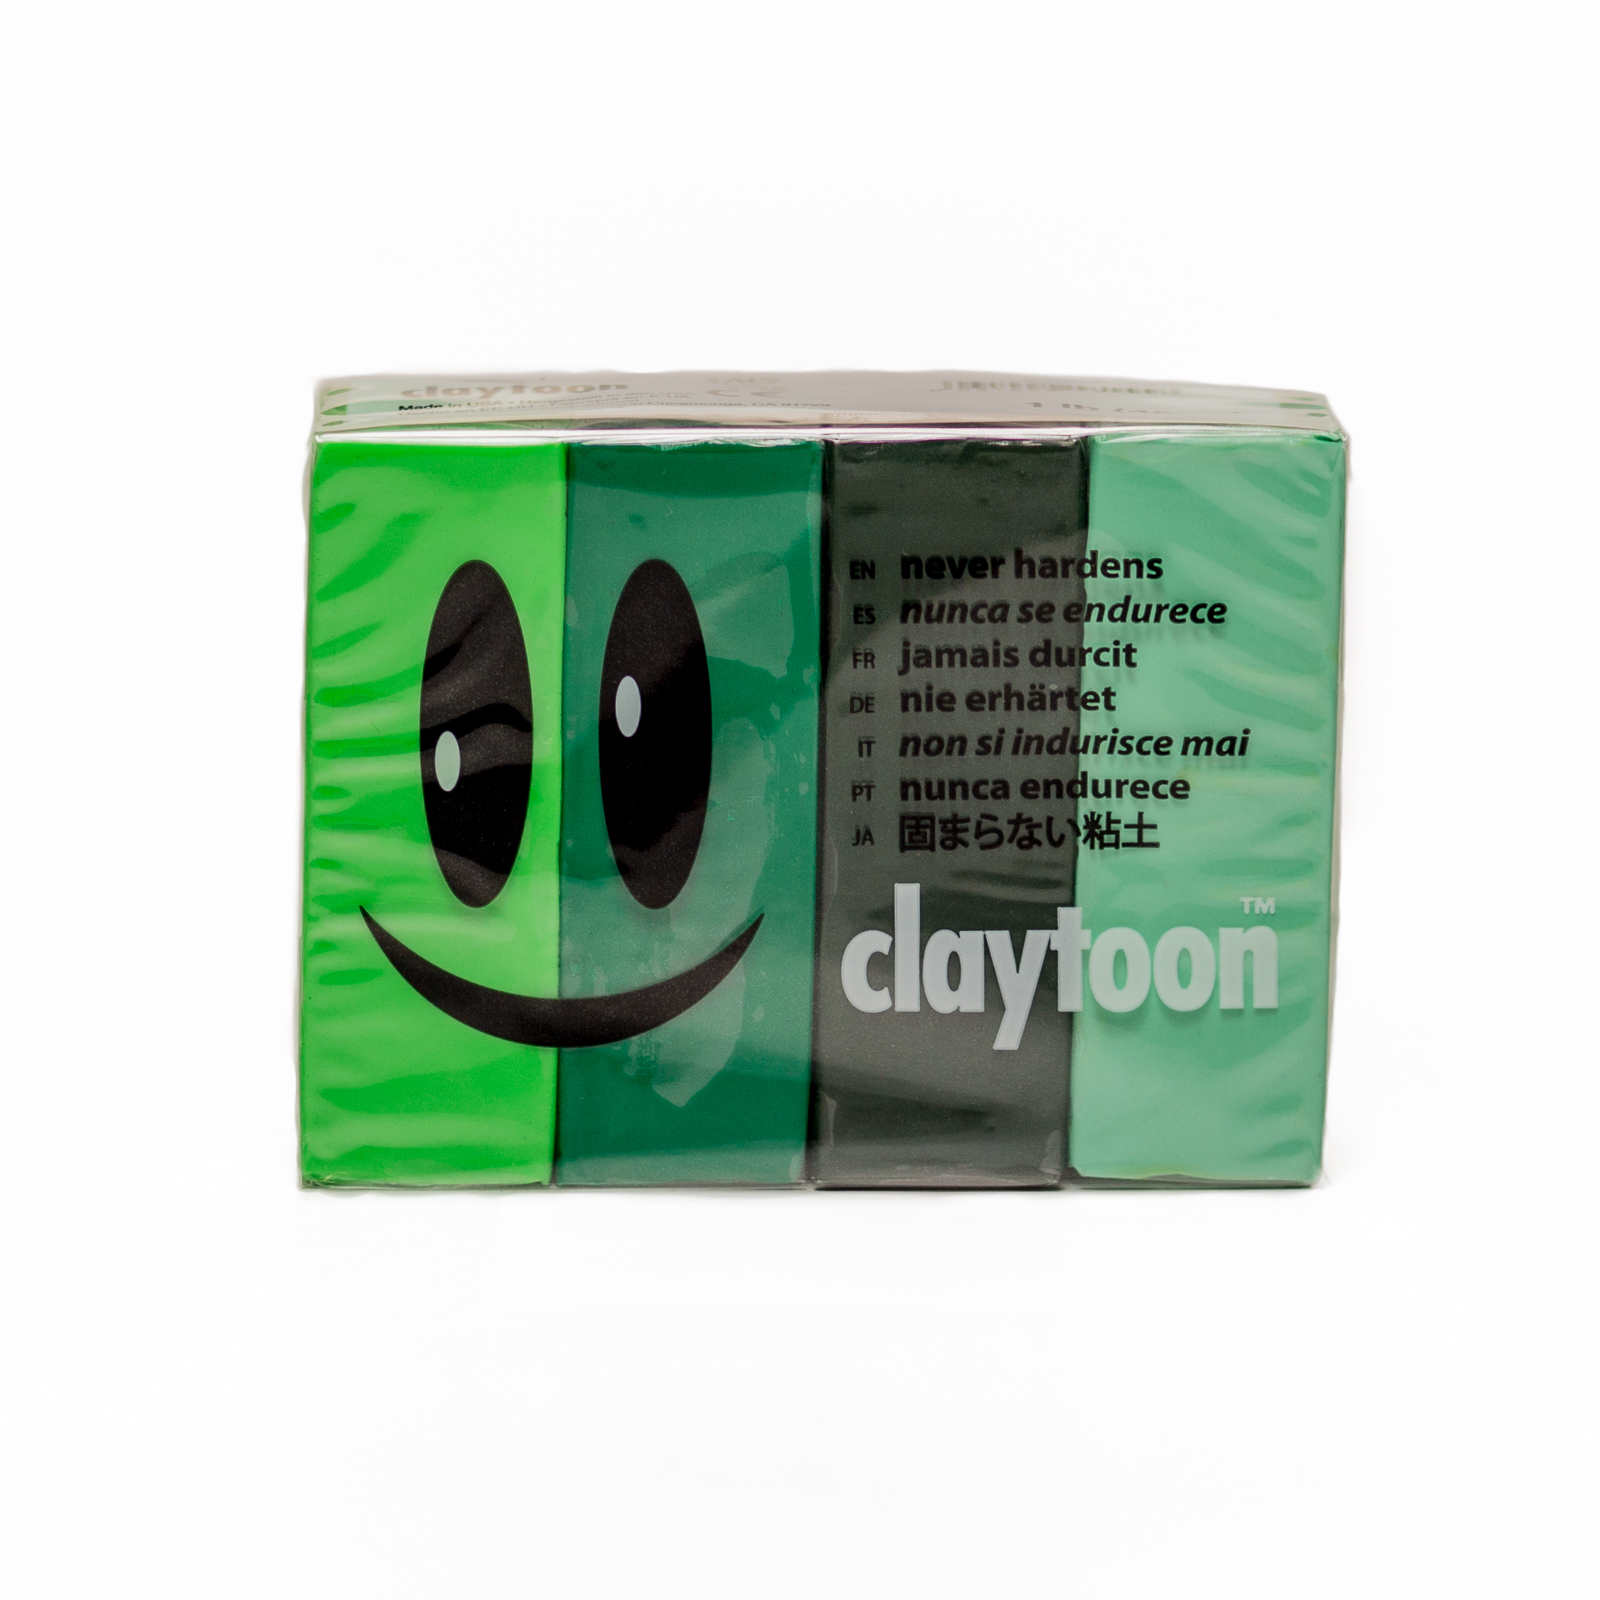 Van Aken Claytoon Clay Set, Lush